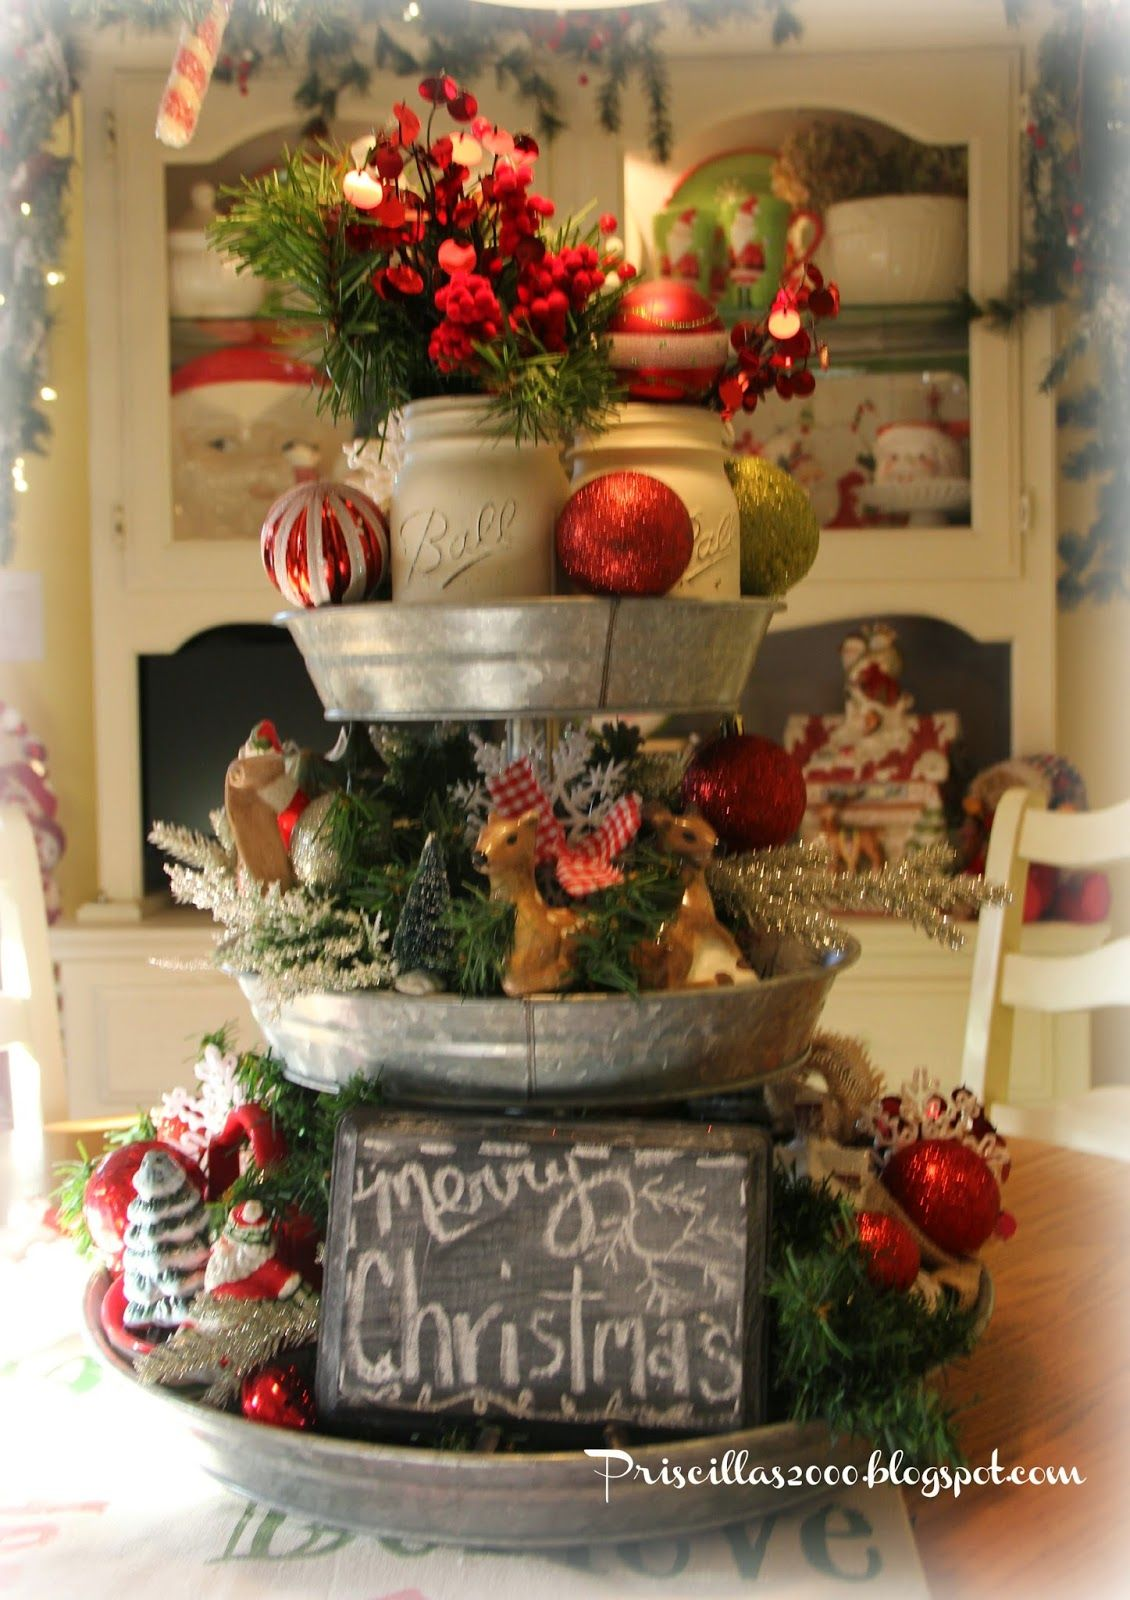 Christmas Galvanized Tray Centerpiece Christmas Centerpieces Christmas Decorations Christmas Diy